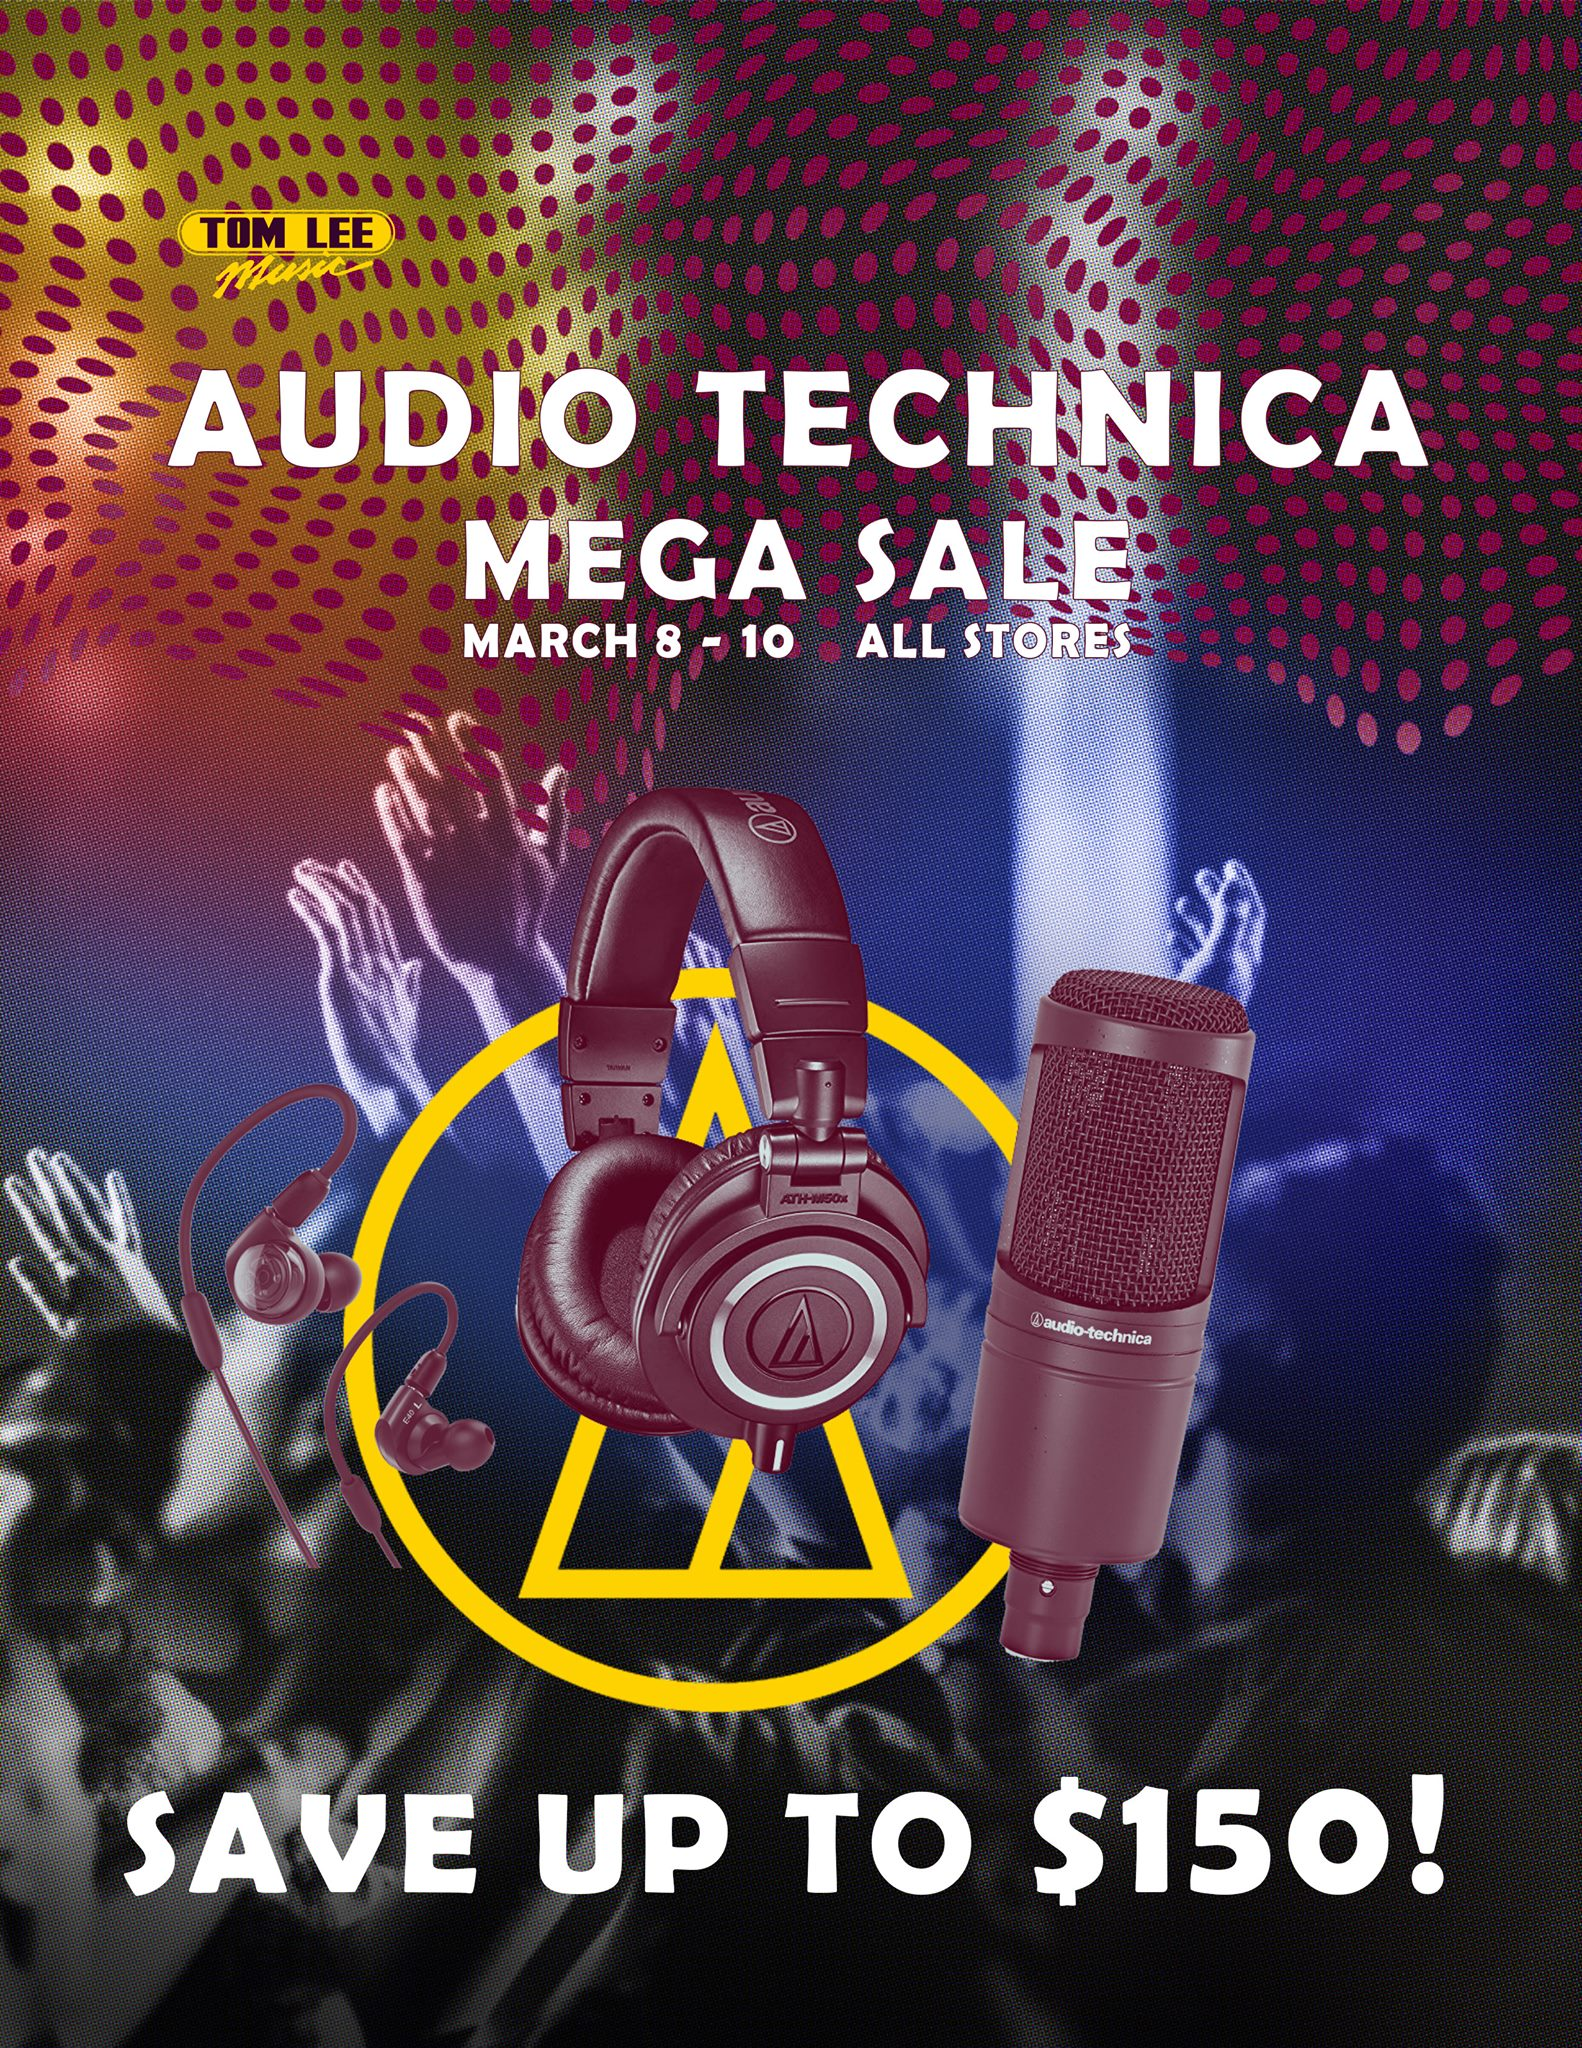 Audio-technica-mega-sale